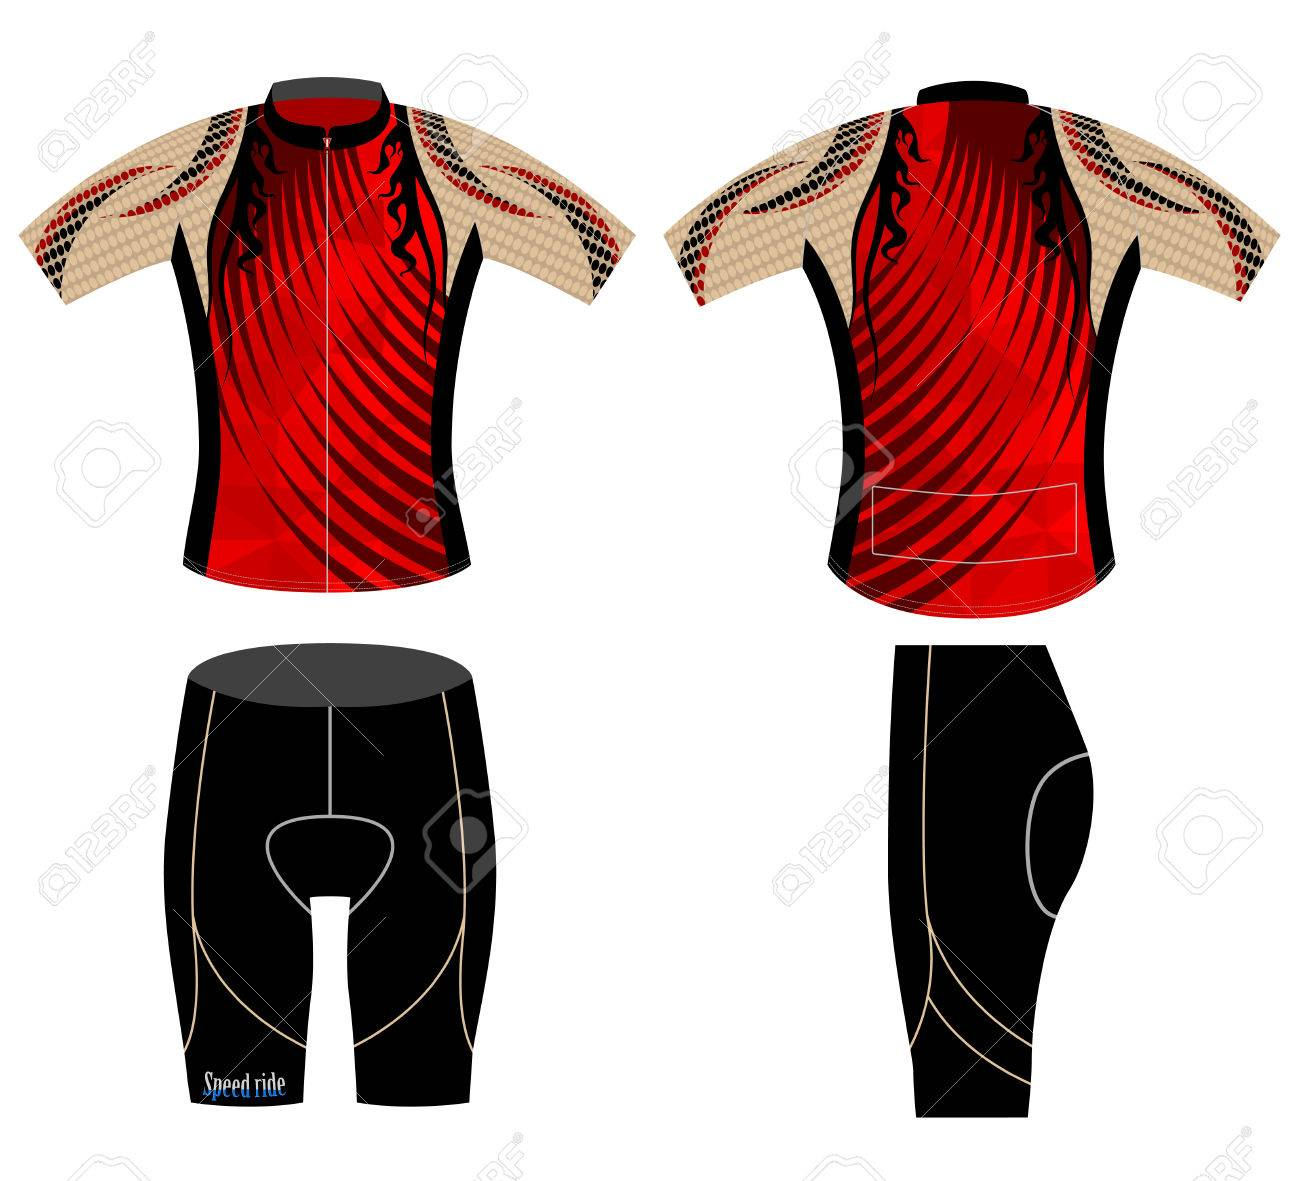 Design t shirt vector - Graphic Cycling Vest Design Sports T Shirt Vector Background Stock Vector 48195844